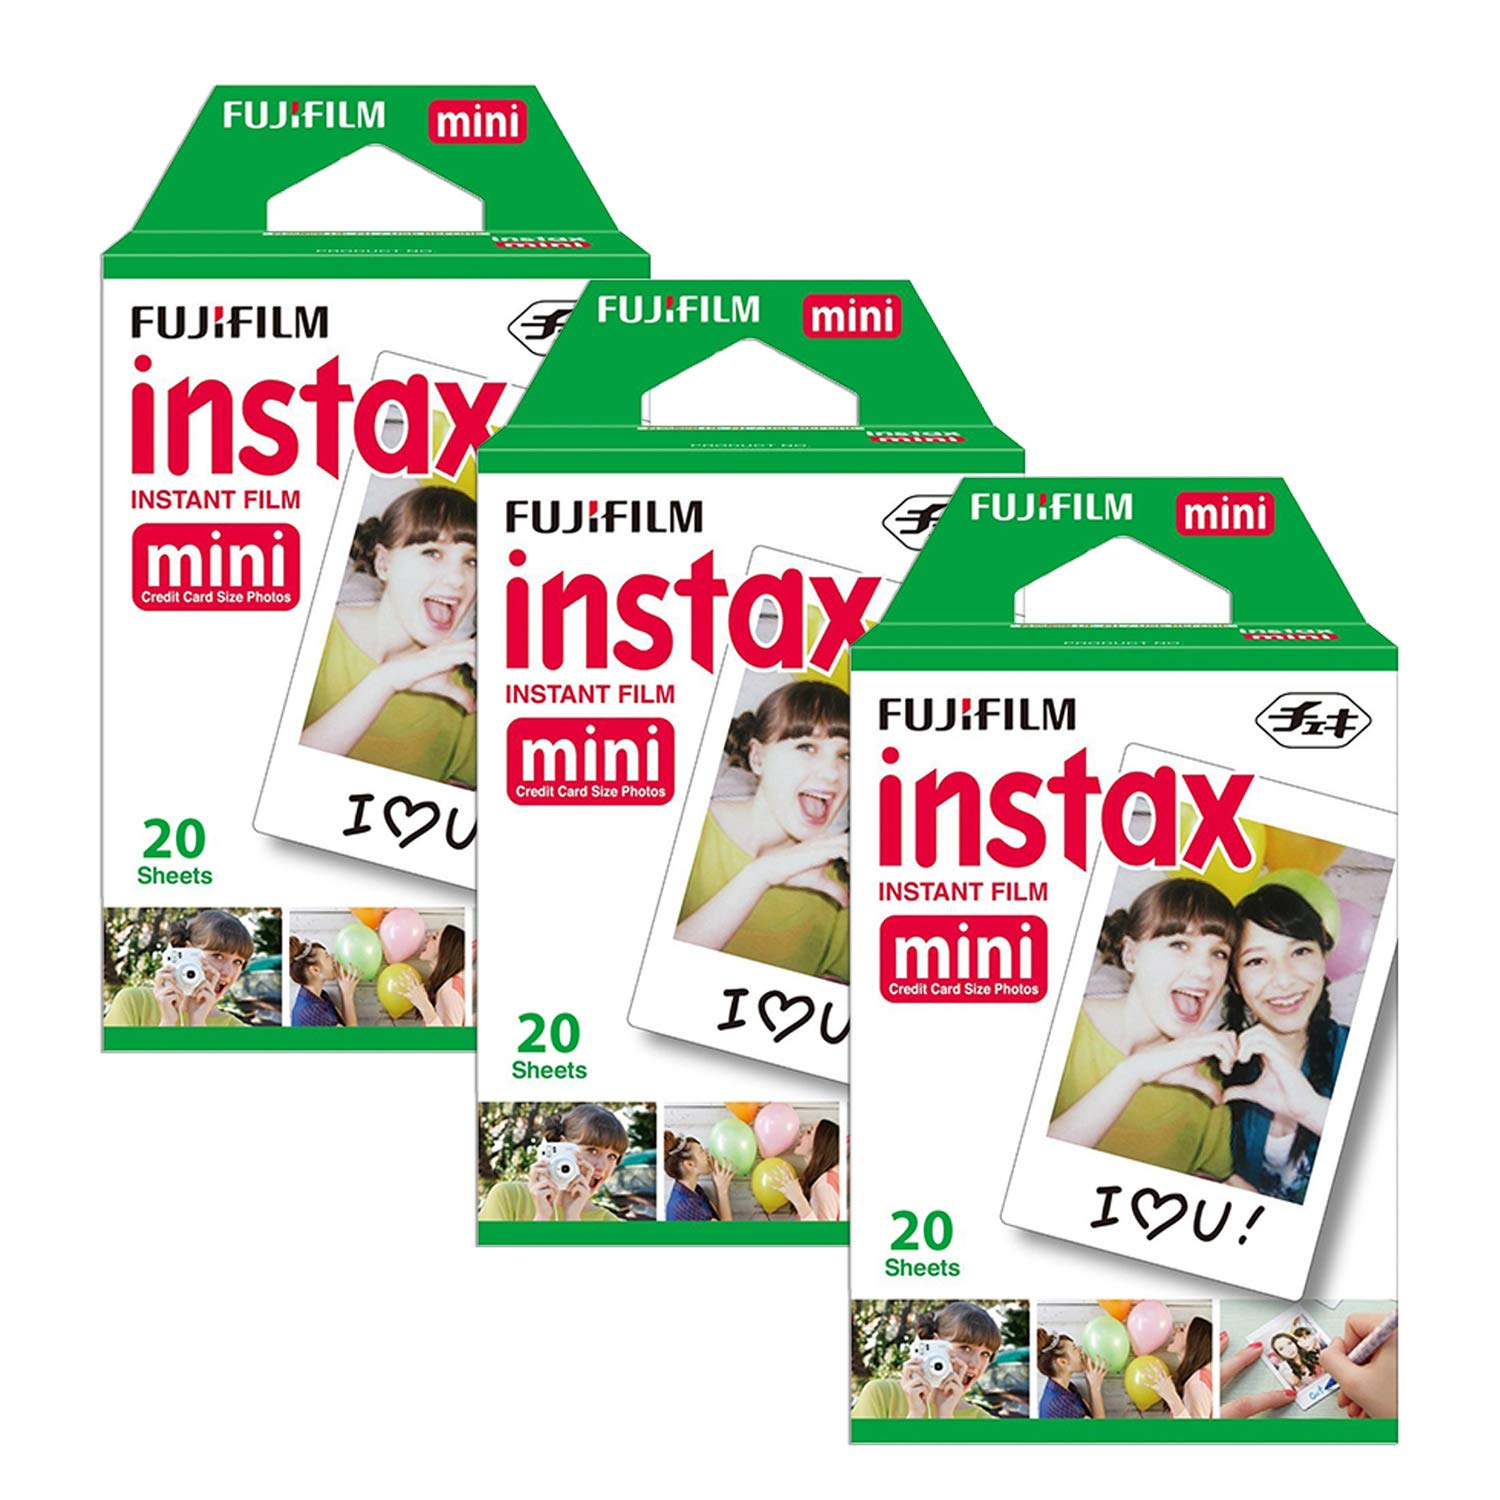 Fujifilm Instax Mini 9 (Yellow with Clear Accents), 3X Instax Film (60 Sheets), Groovy Case, Accordion Album and Hanging Pegs by Fujifilm (Image #6)